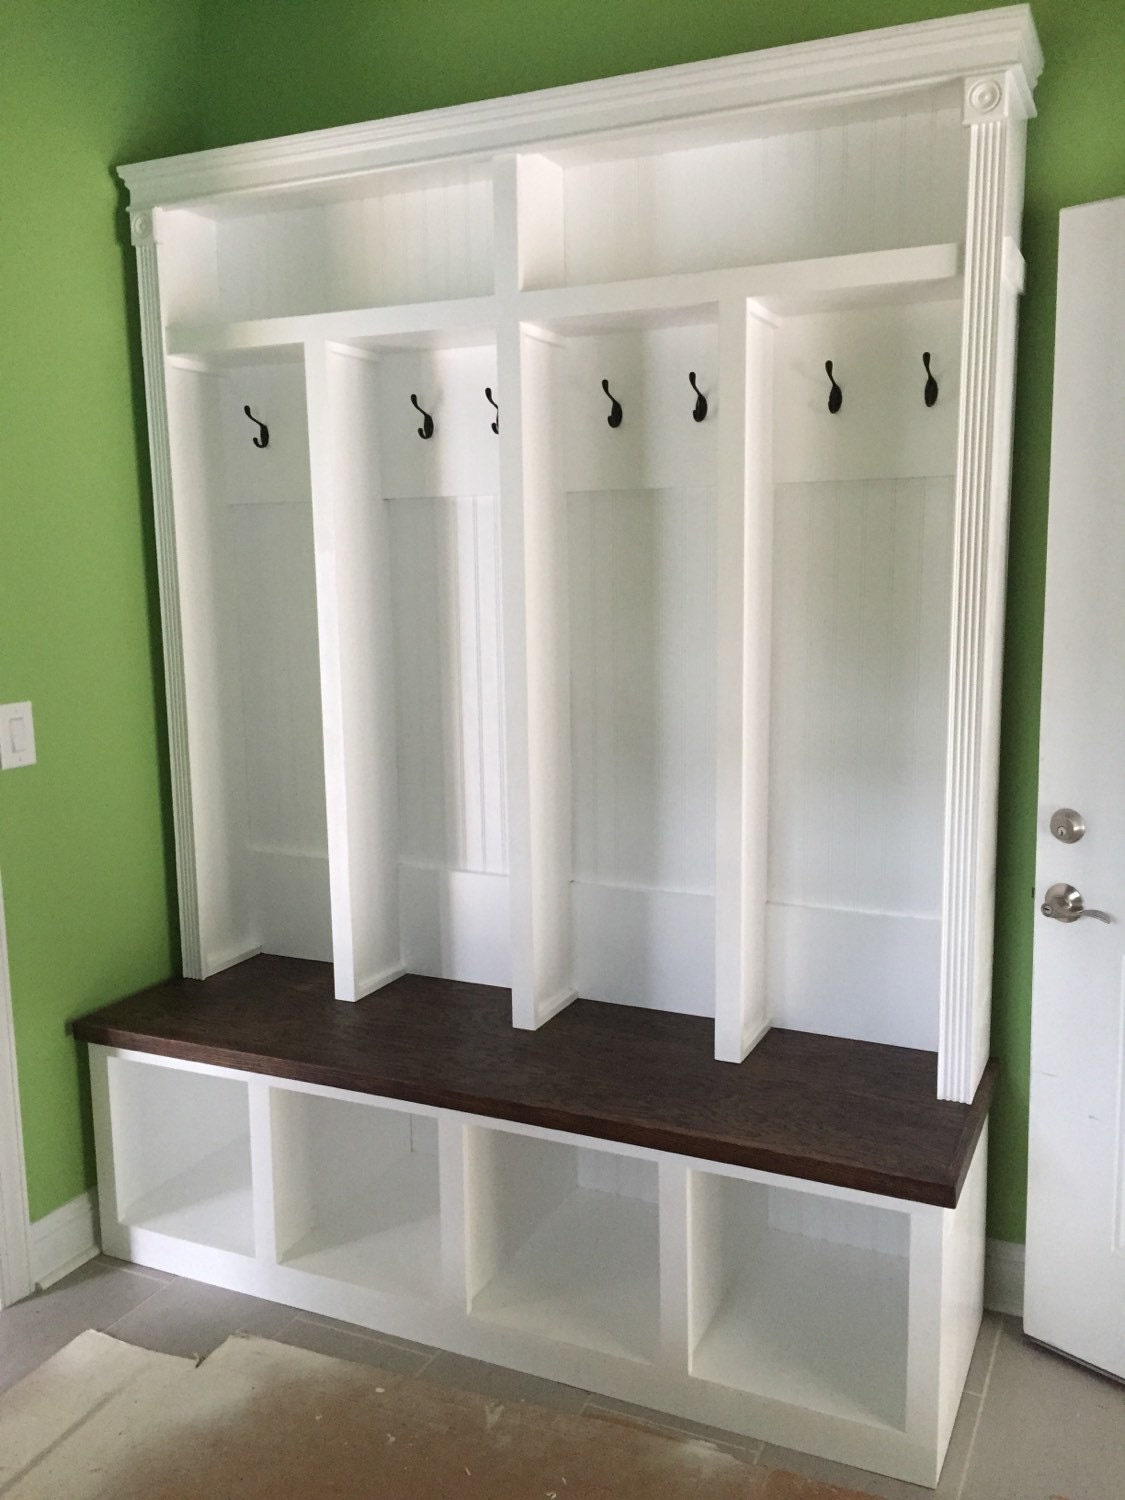 Entryway Locker Hall Tree Storage Locker Mudroom Dropzone